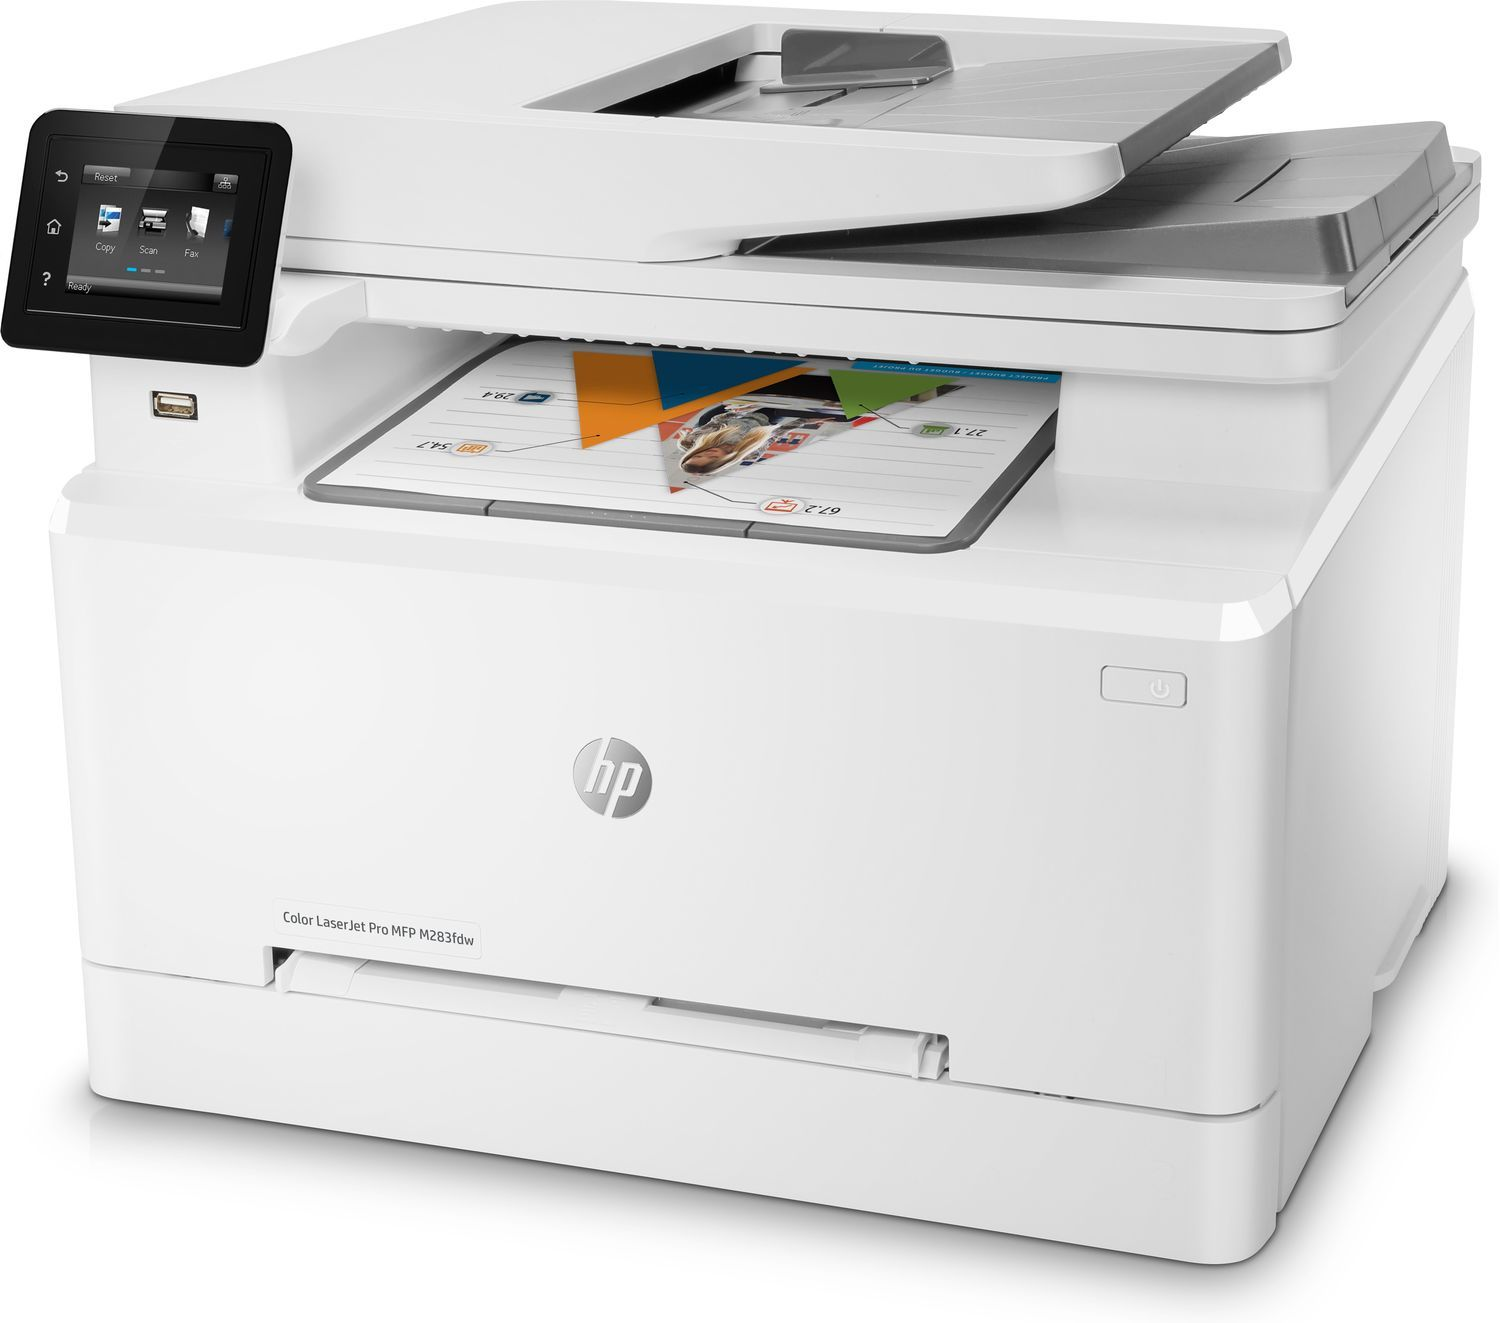 Hp 7kw75a Abt Online Laser Printers Buy Low Price In Online Shop Topmarket Best Laser Printer Laser Printer Printer